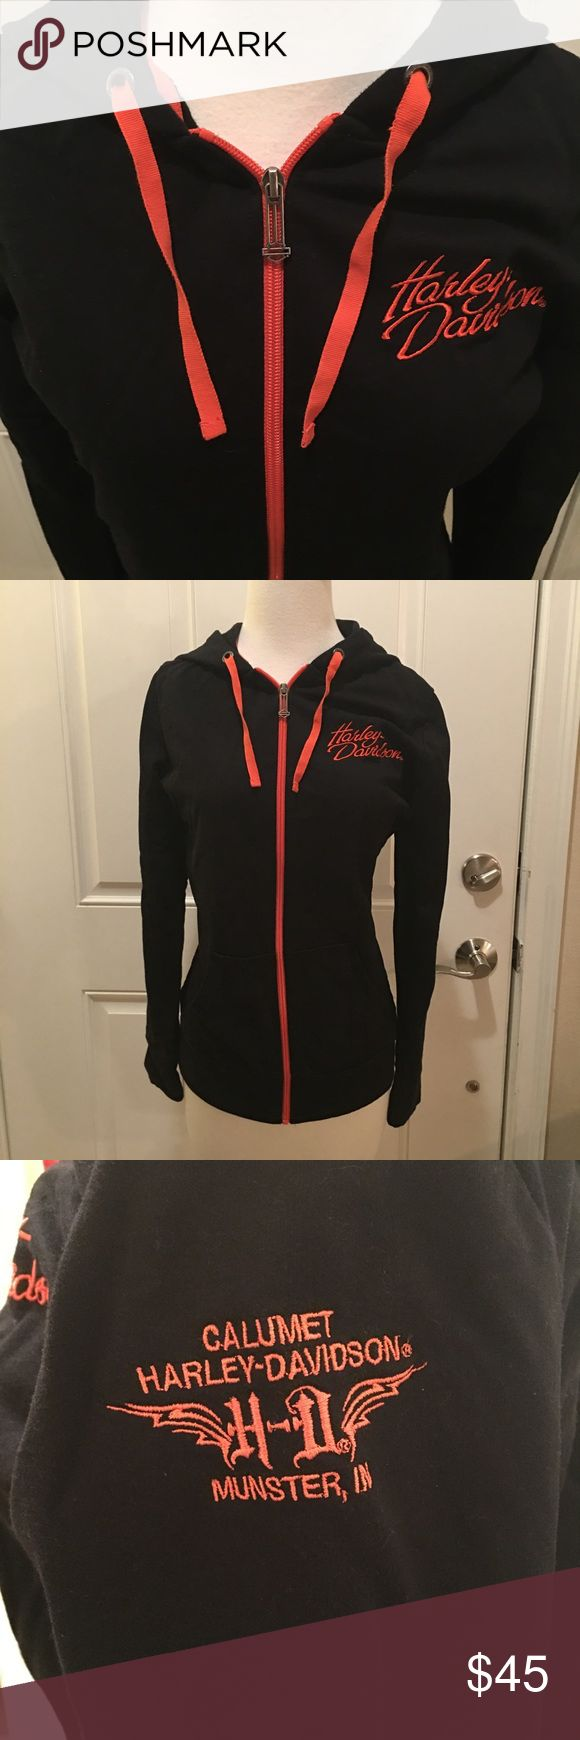 NWOT 🔥 Harley Davidson Comfy Hoodie Like new and never worn. I took the tags off thinking I would wear it but I have so many hoodies I never got around to wearing this one. It's in perfect shape and very soft. From the Calumet Harley dealer in Munster IN. Harley-Davidson Tops Sweatshirts & Hoodies